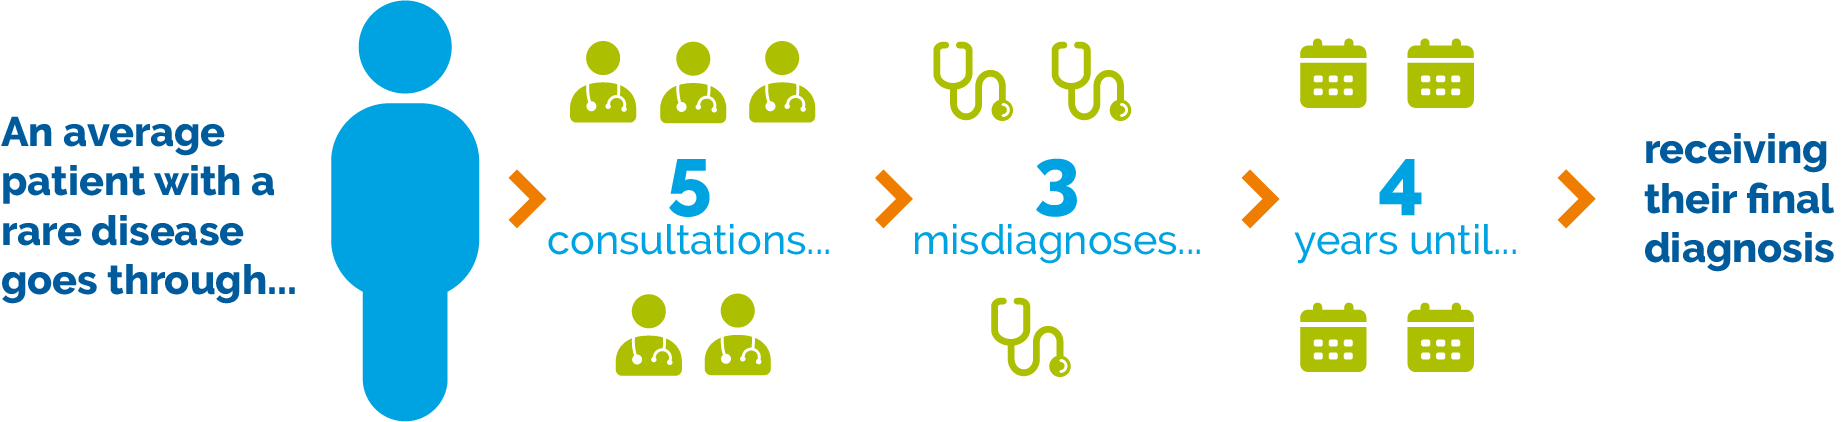 An average patient with a rare disease goes though 5 consultations, receives three misdiagnoses and waits an average of 4 years for their diagnosis